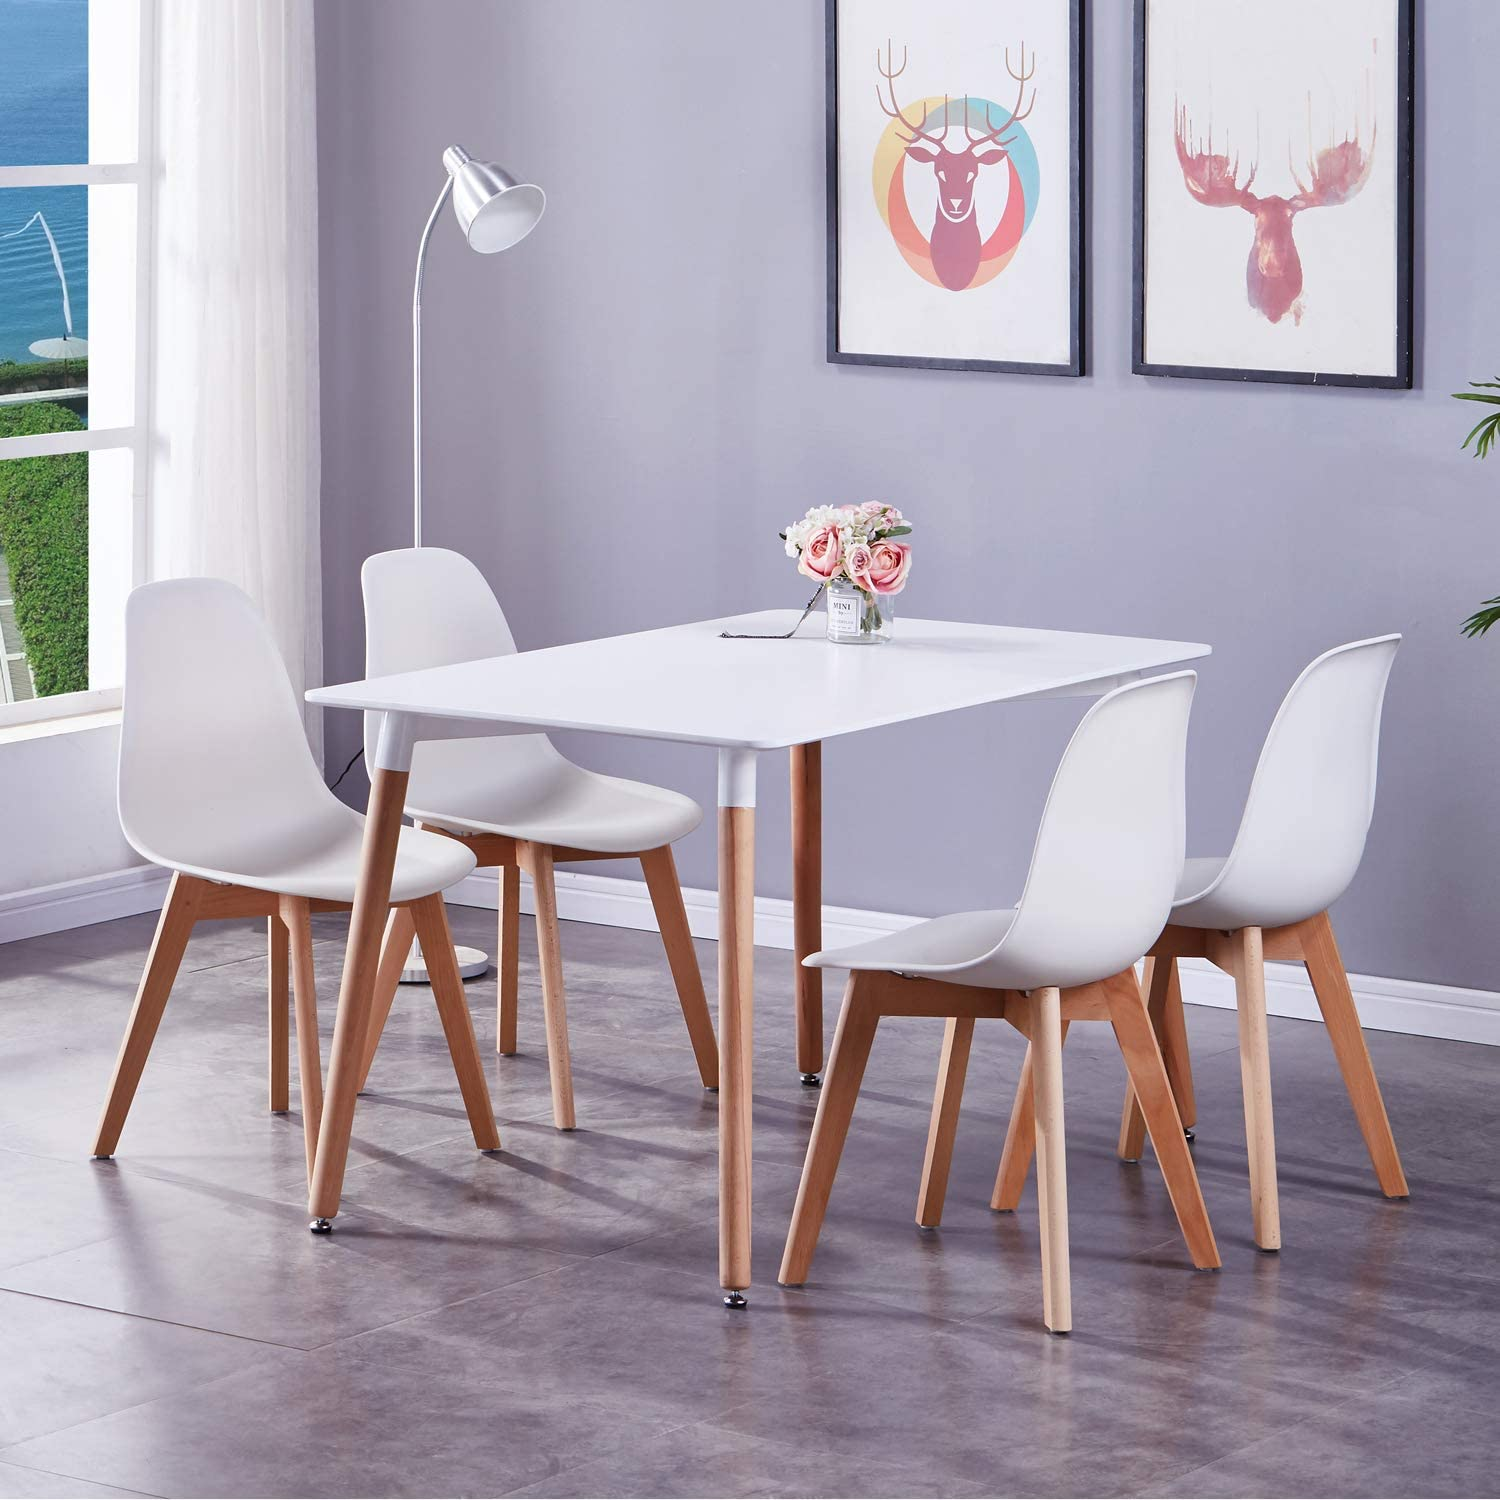 Goldfan Dining Table And Chairs Set 4 Wood Style Rectangular Kitchen Table And 4 Tulip Chairs Dining Table Set Office Lounge Dining Kitchen All White Amazon Co Uk Kitchen Home